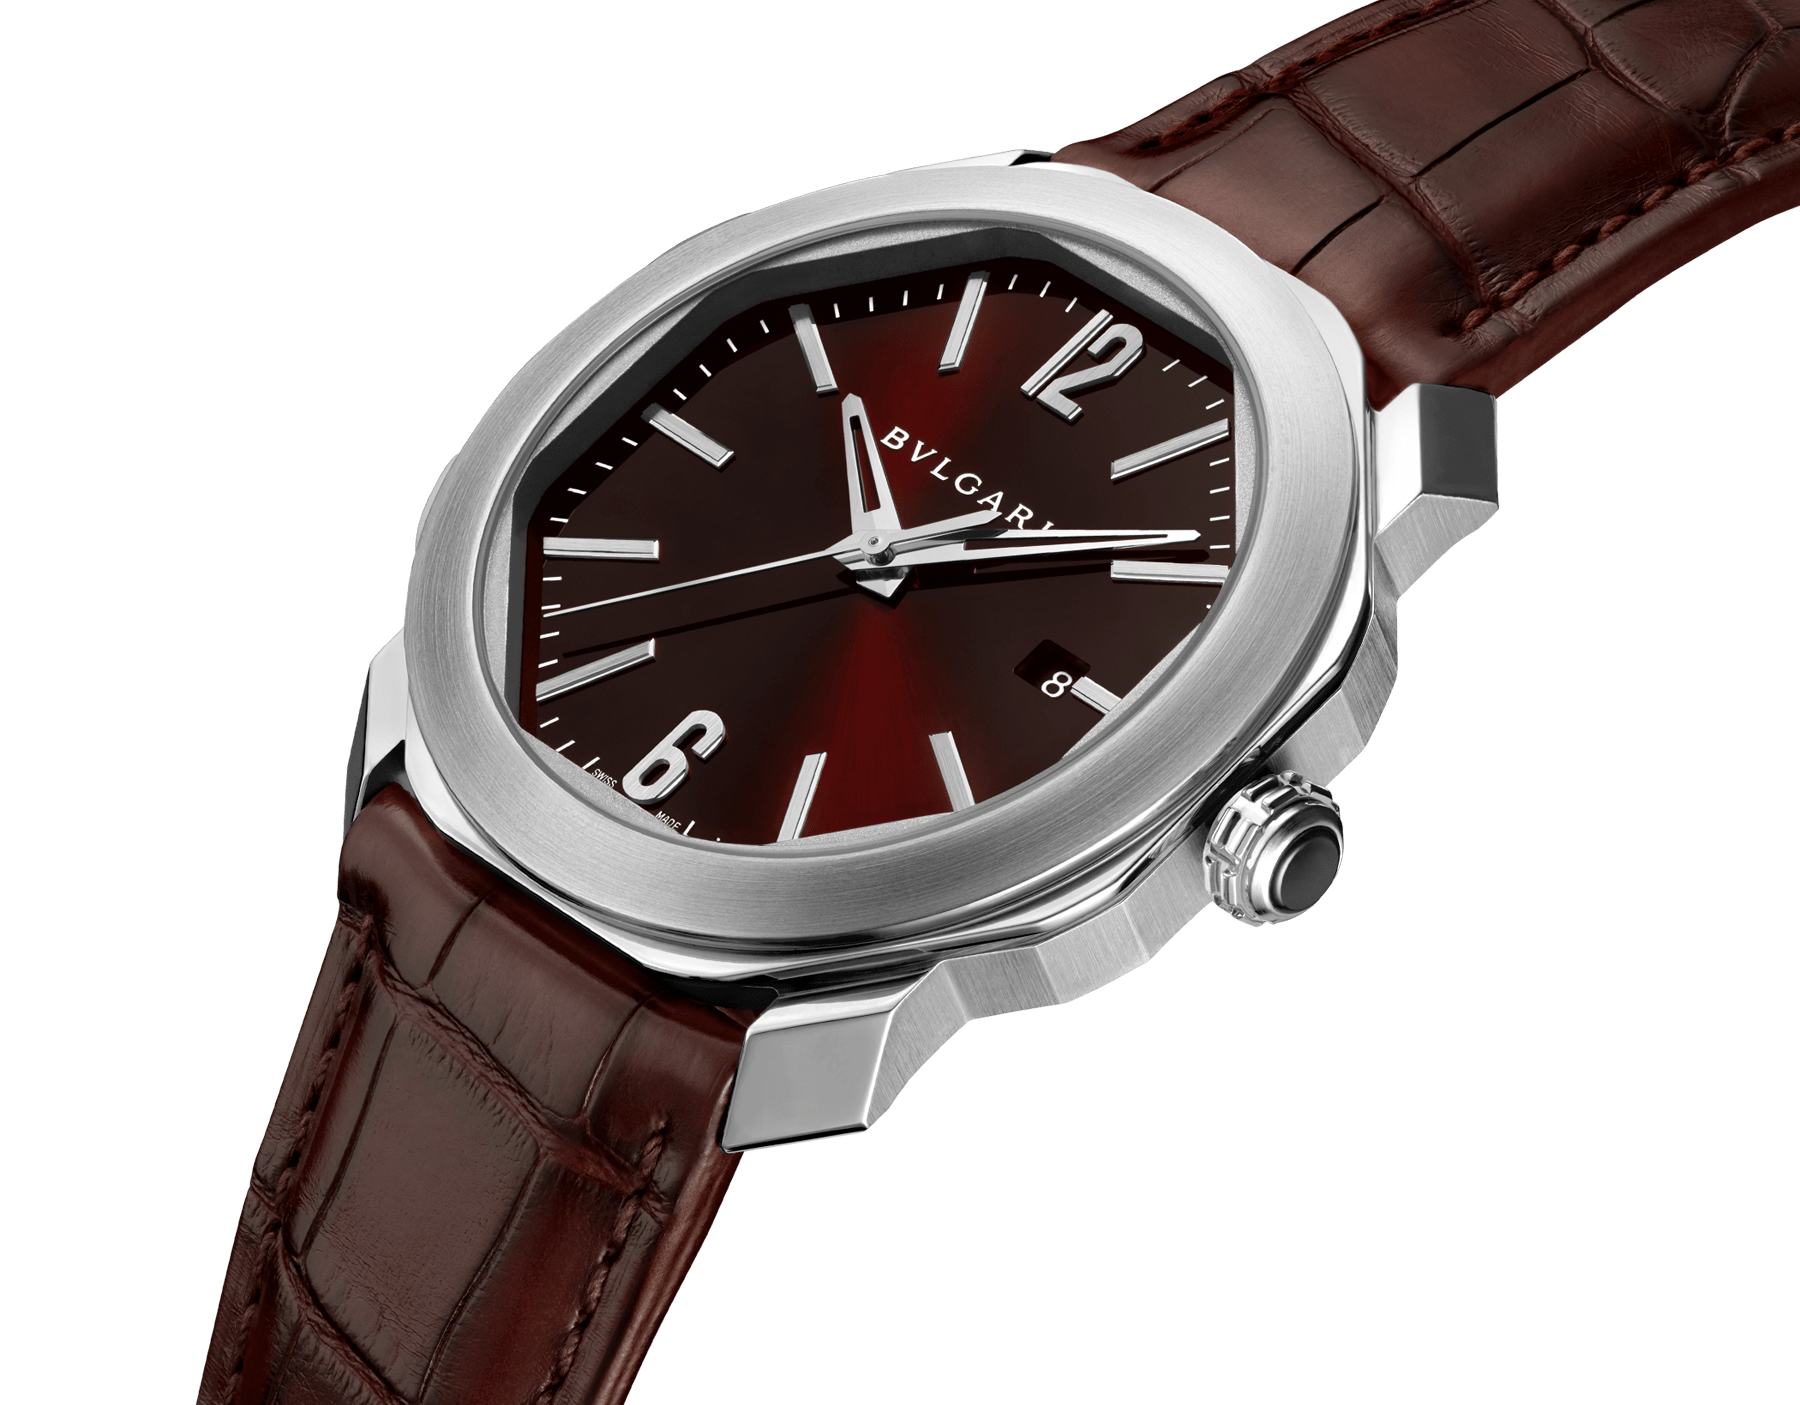 Octo Roma watch with mechanical manufacture movement, automatic winding, stainless steel case, dark brown lacquered dial and brown alligator bracelet. 102705 image 2